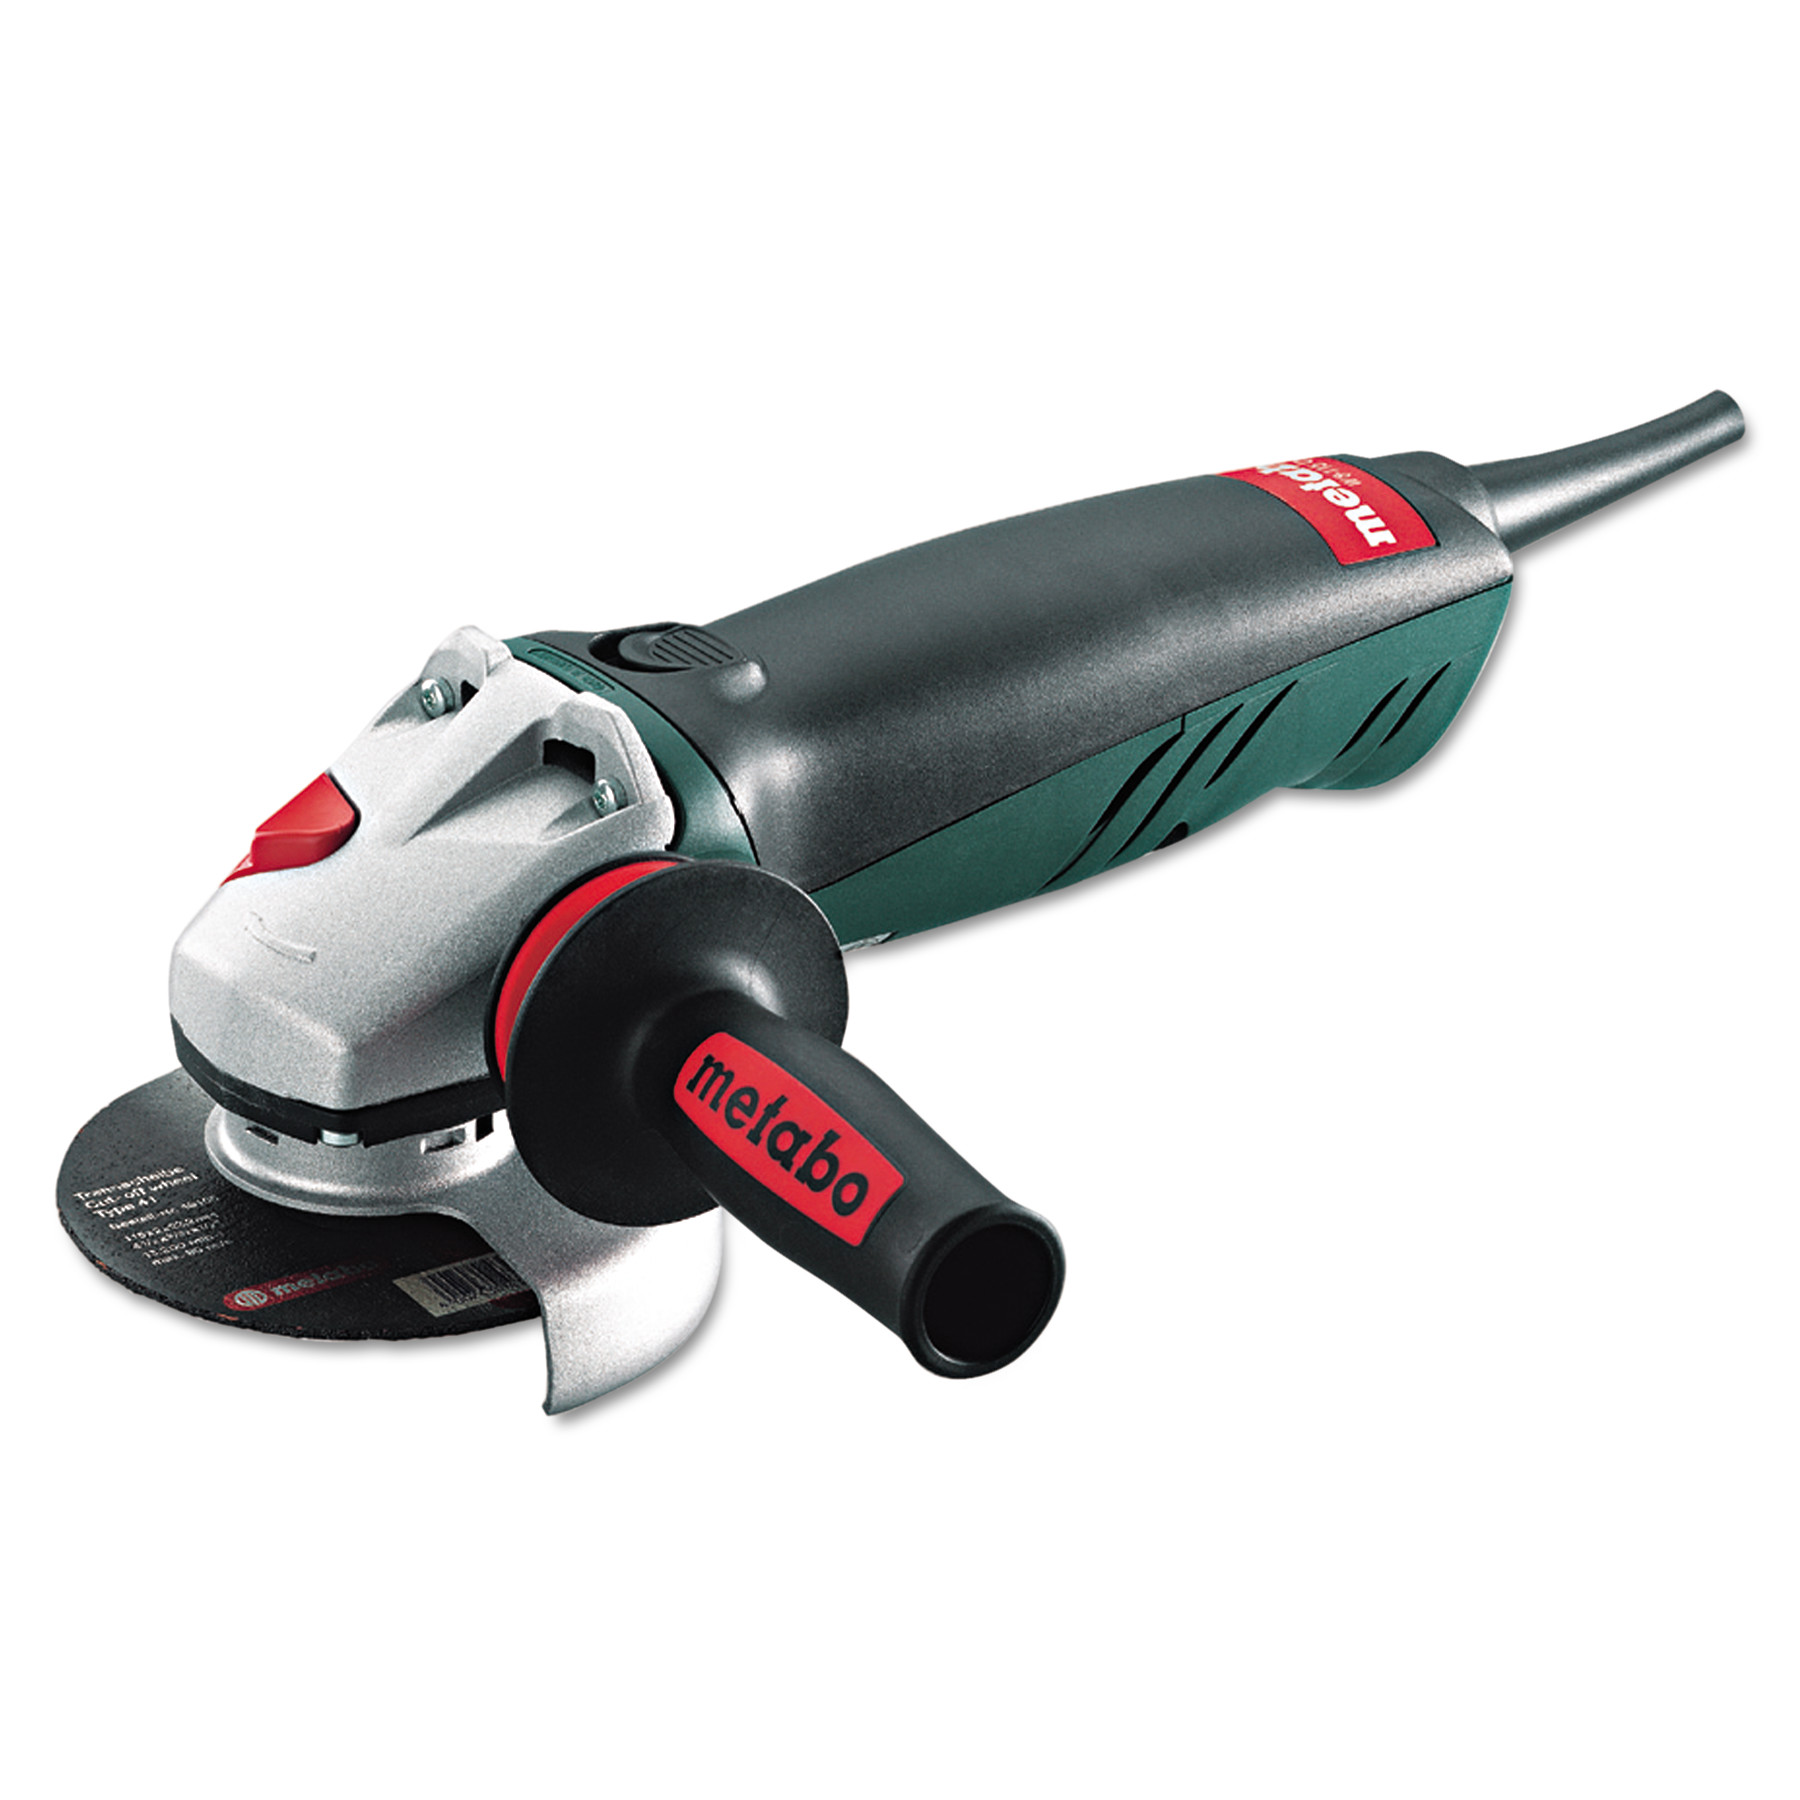 "metabo W8 115QWC Compact Class Professional Series Angle Grinder, 4 1/2"" Wheel"